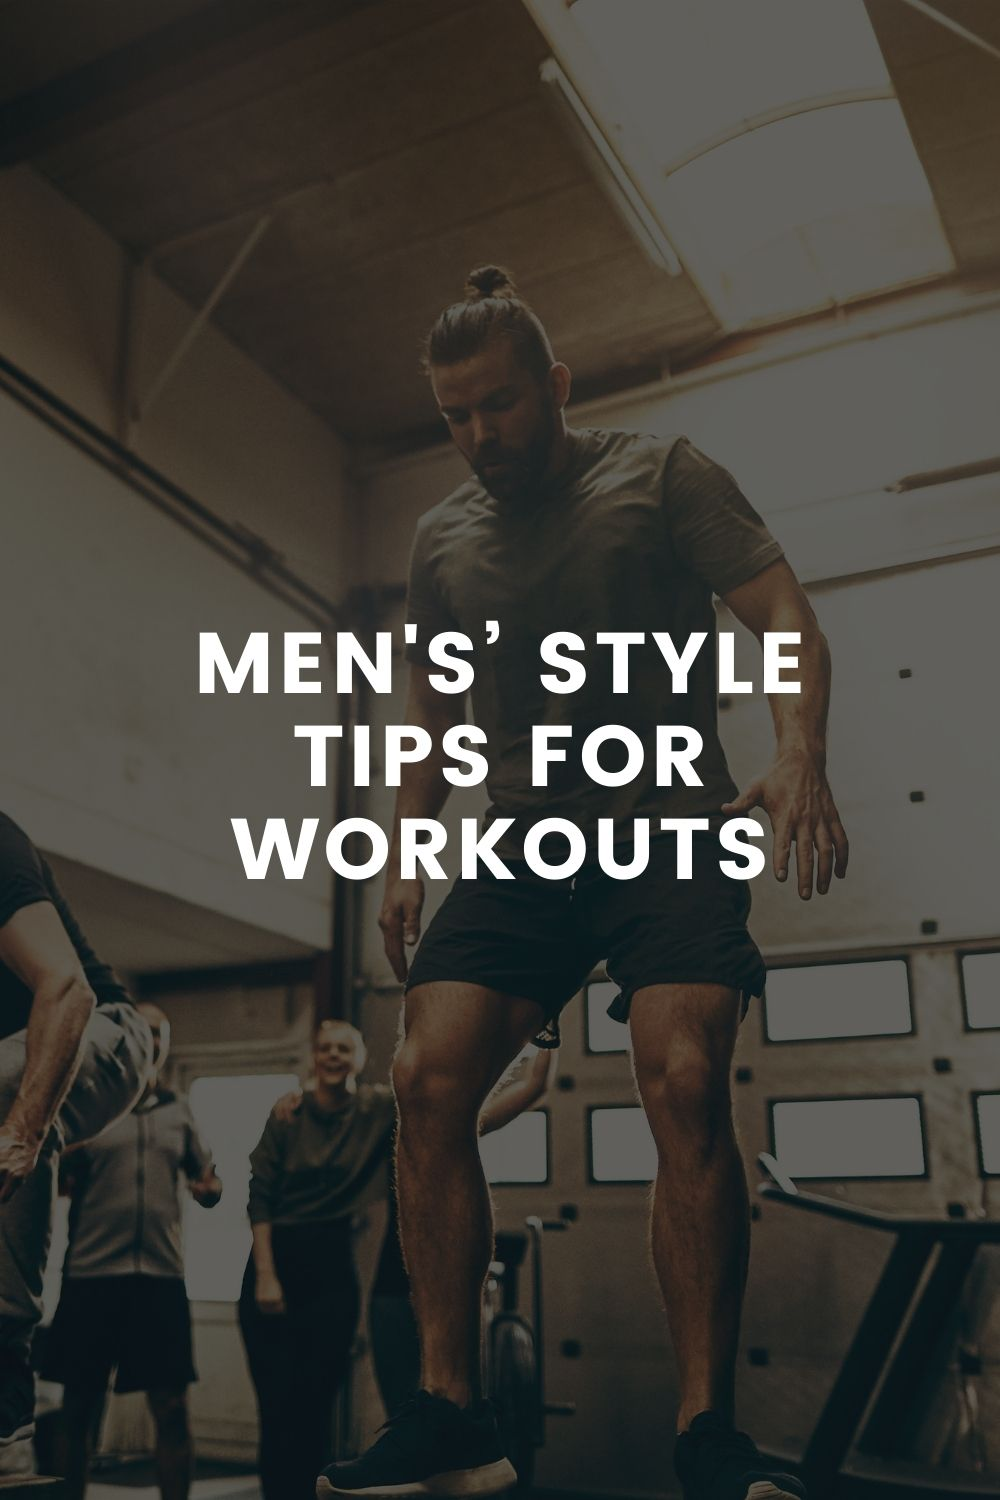 Men's' Style Tips for Workouts